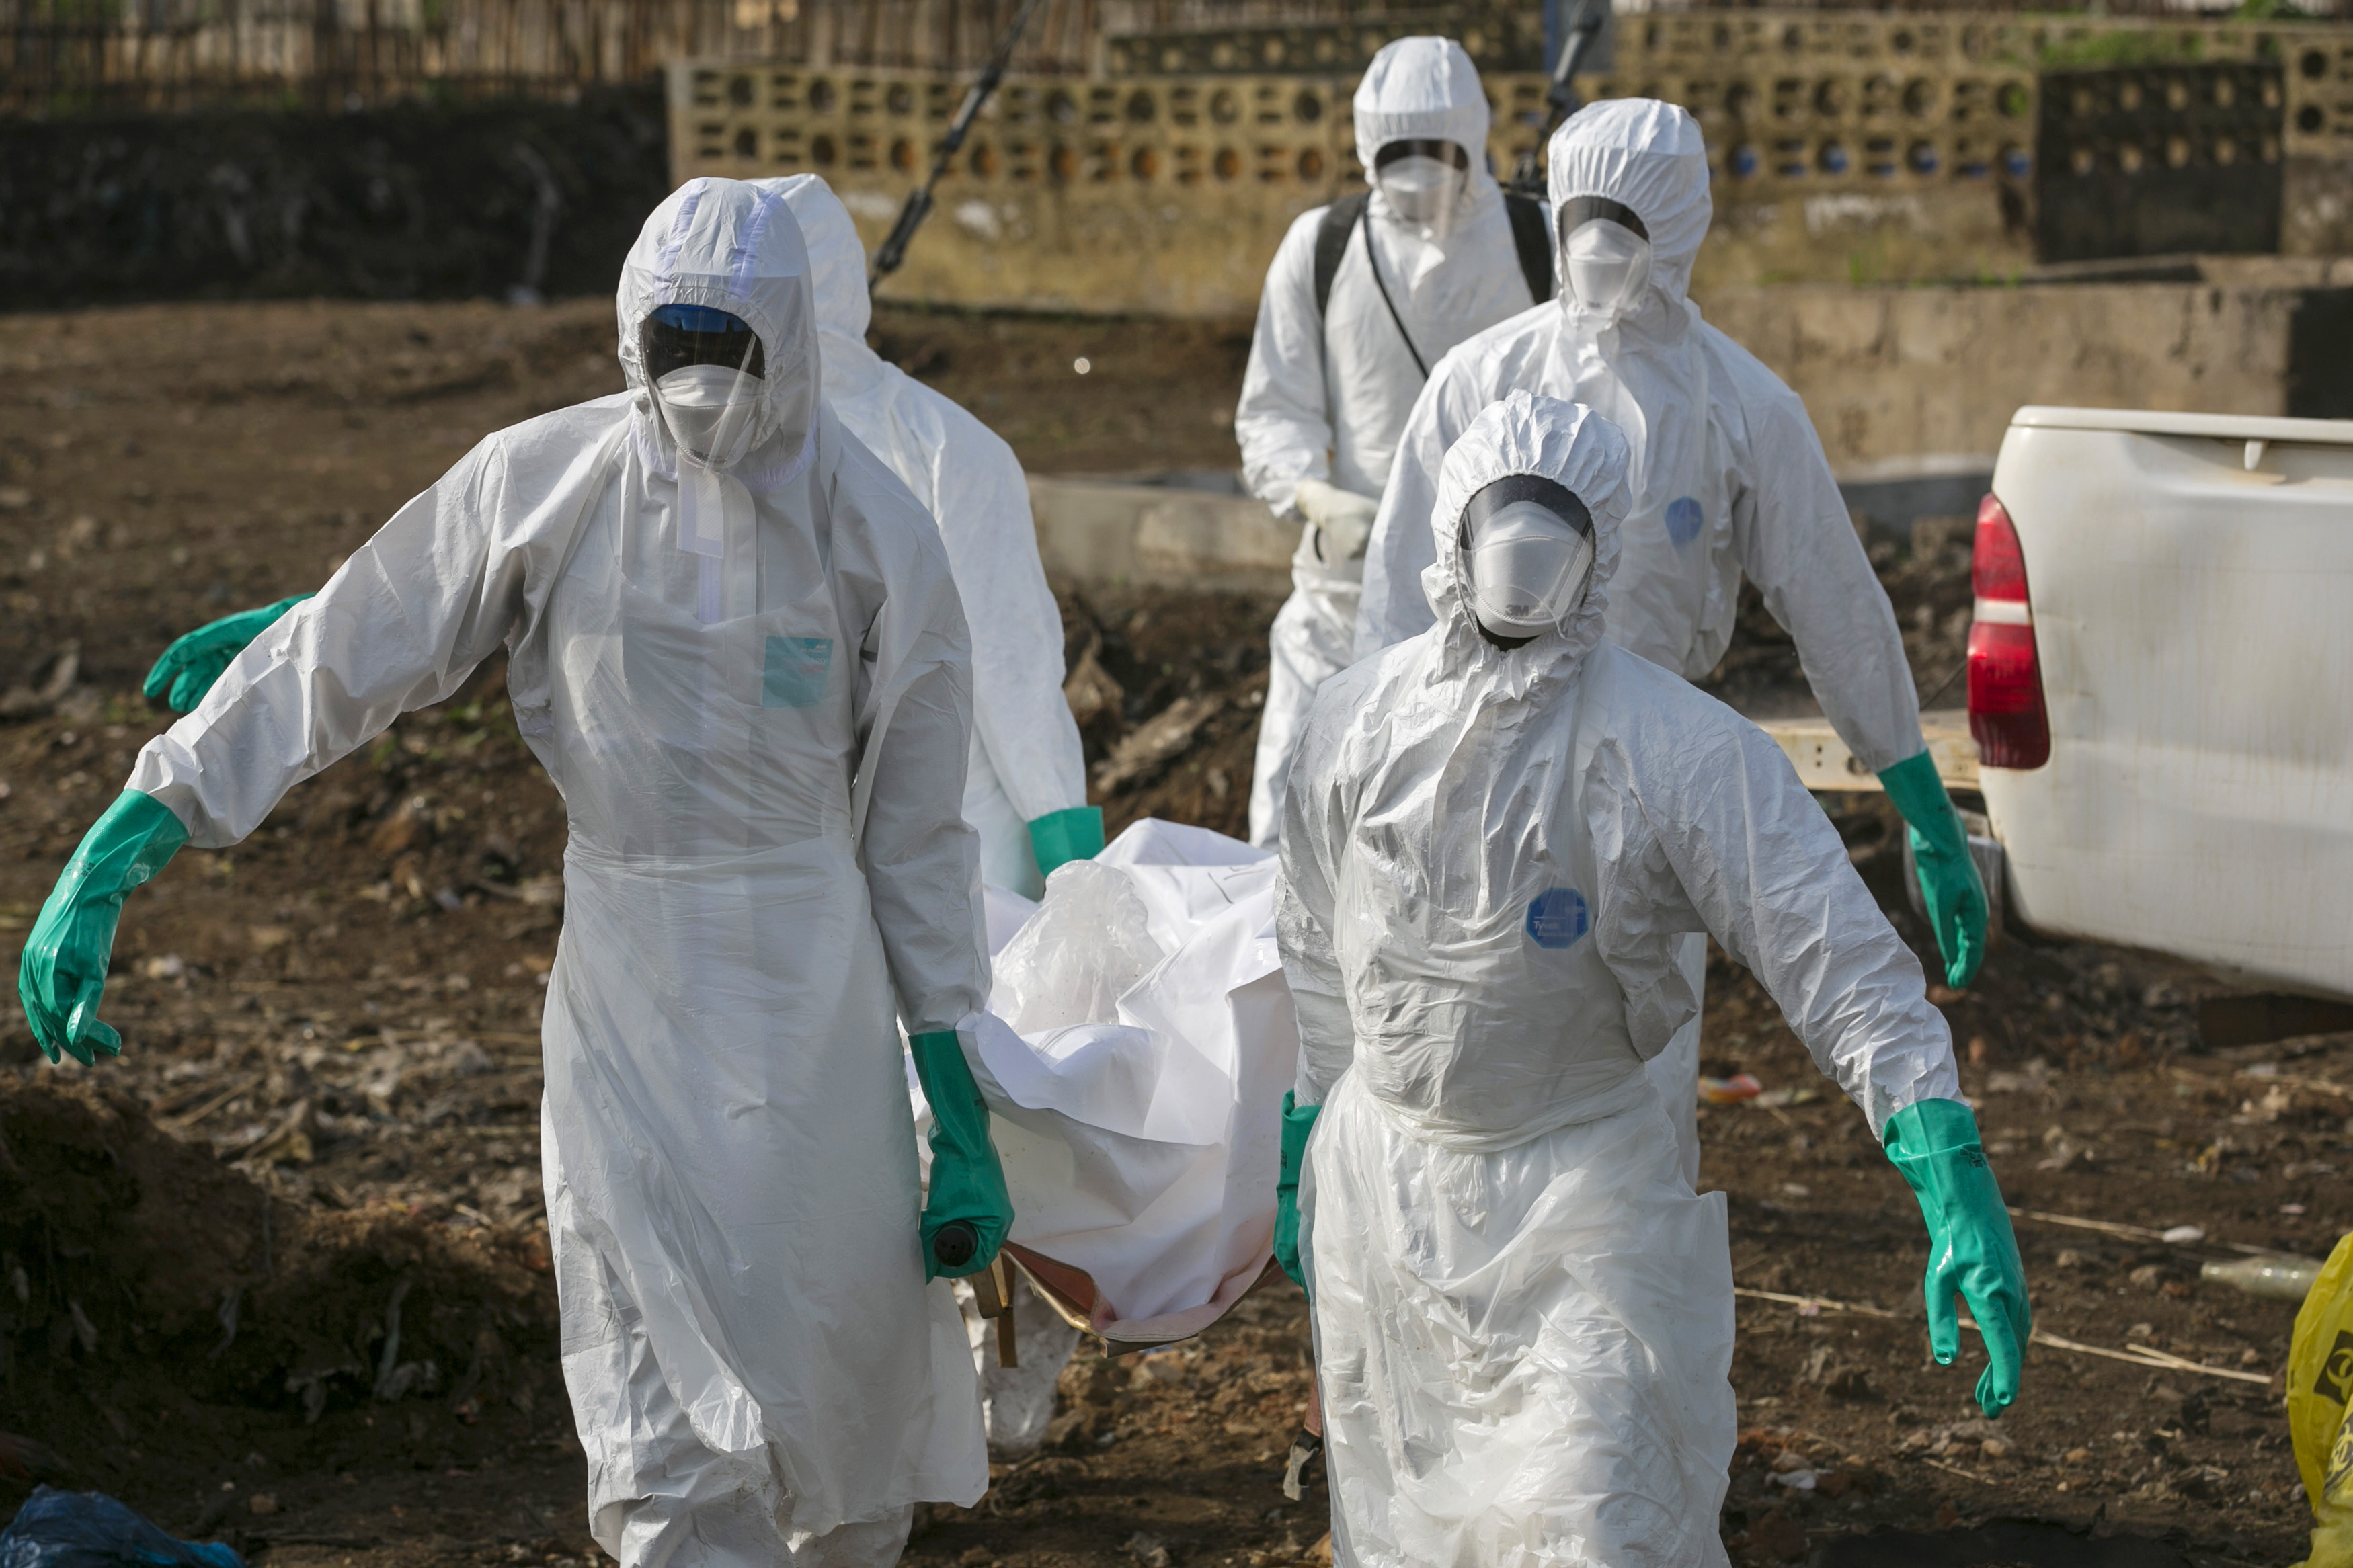 Health workers carry the body of a suspected Ebola victim for burial at a cemetery in Freetown, Sierra Leone on Dec. 21, 2014. Photo by Baz Ratner